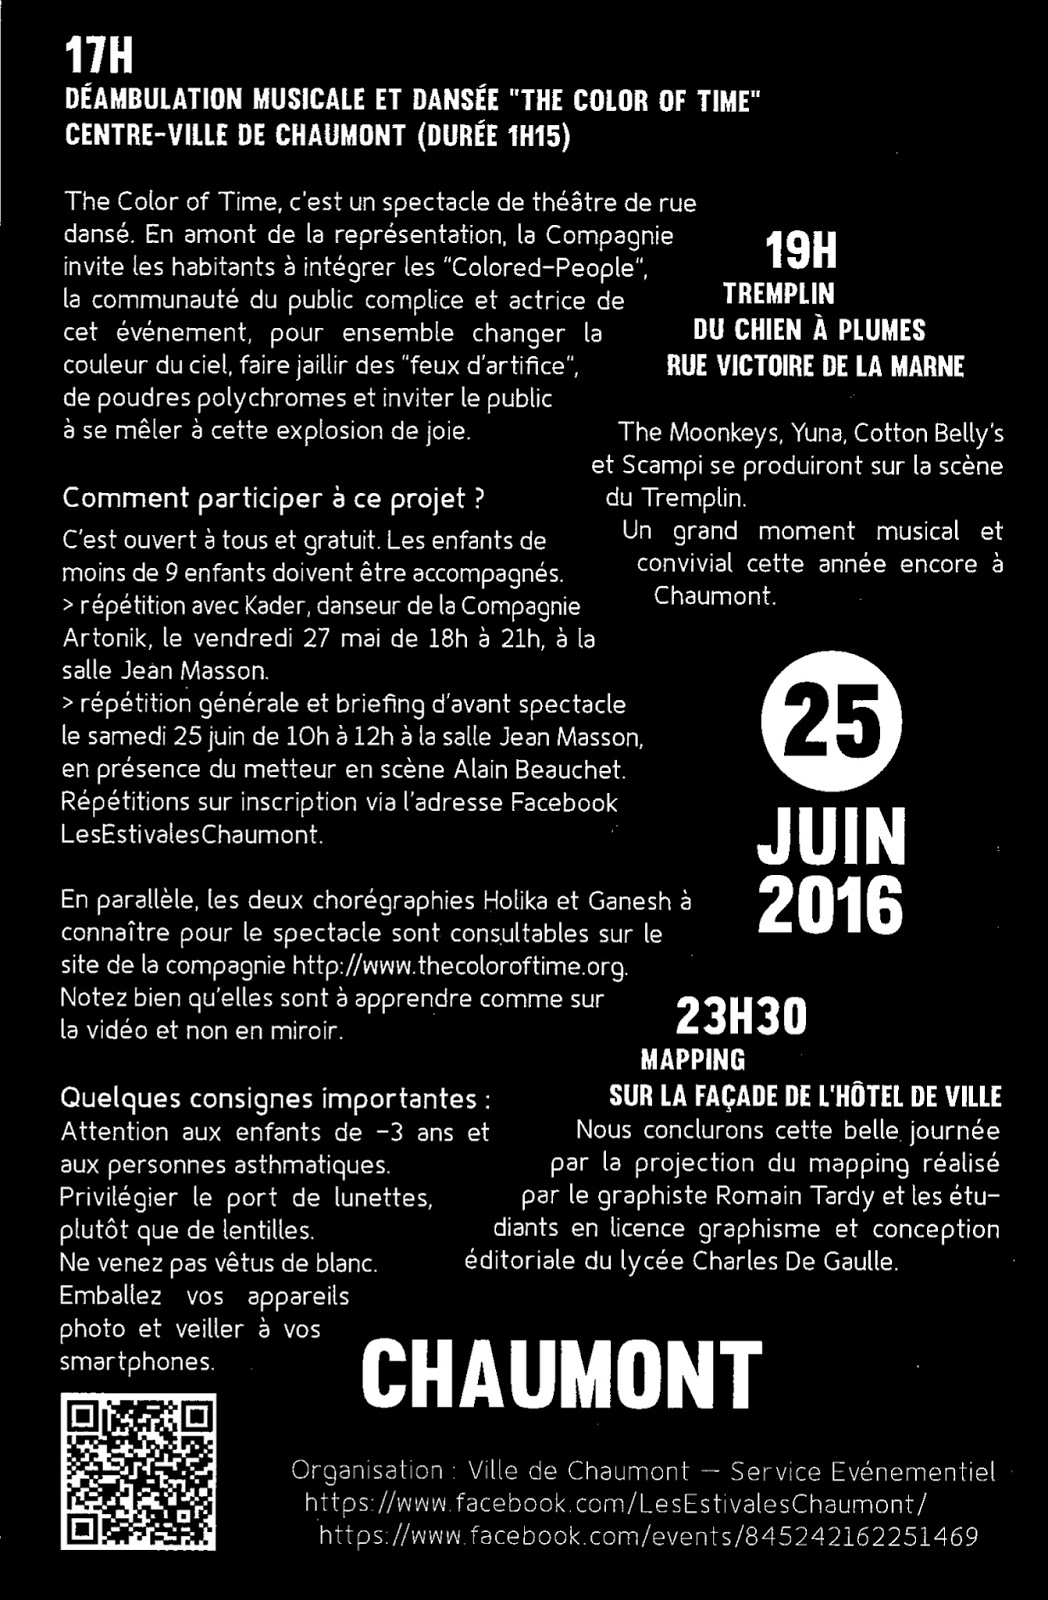 Bloggynews chc holidays 25 juin 2016 chaumont for 25 juin 2016